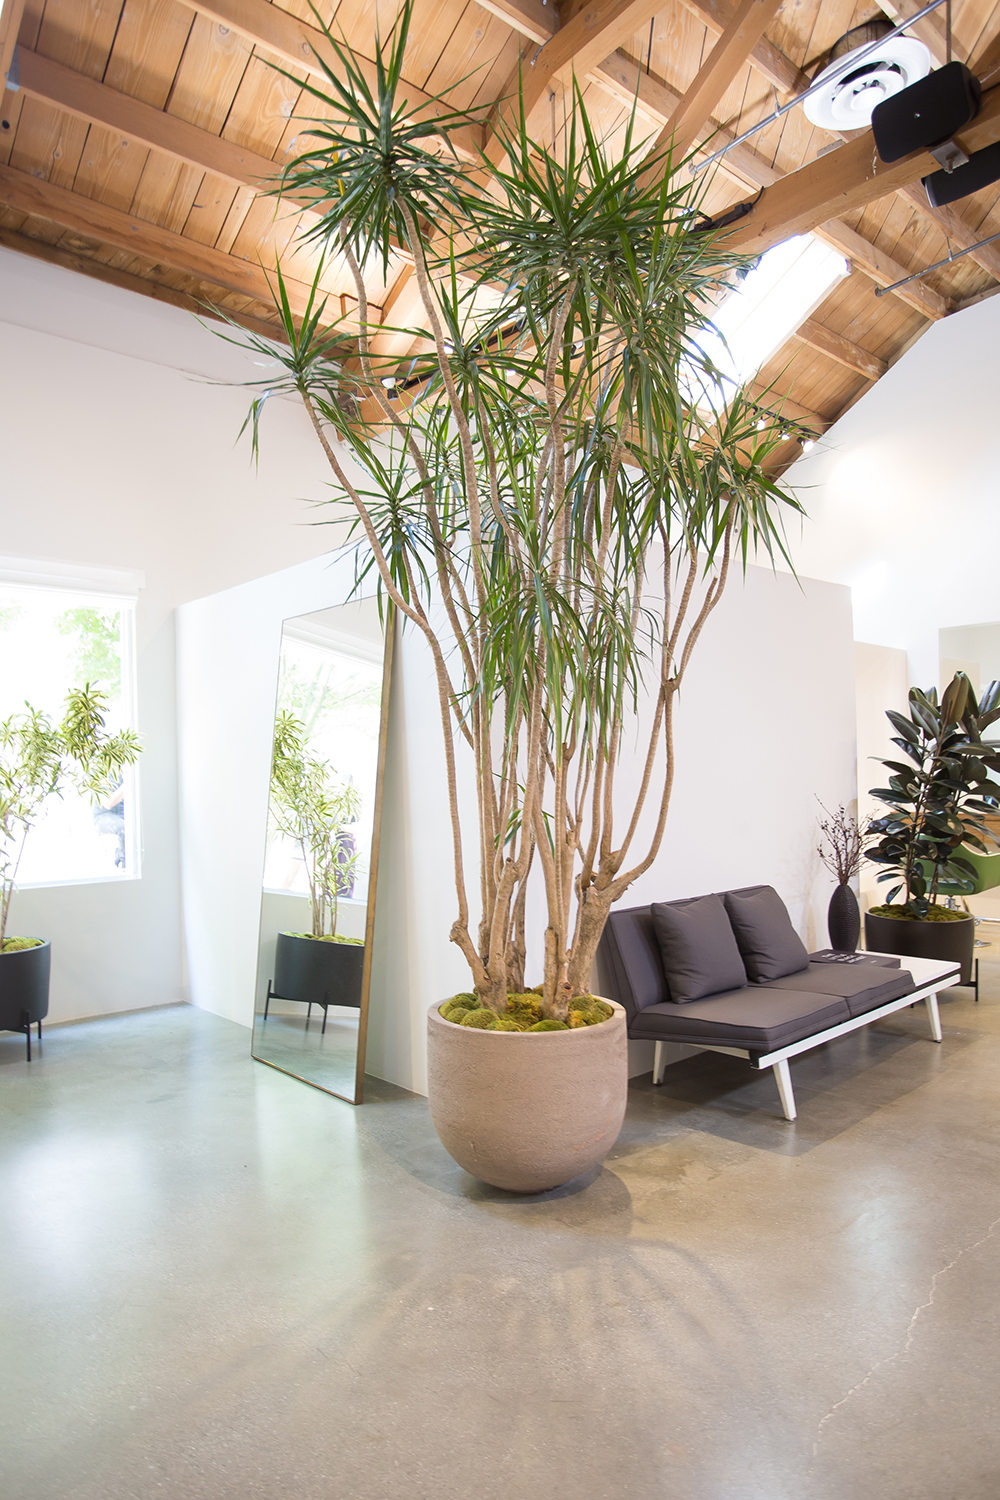 Loft 647 is a Green Circle Salon and goes to great lengths to reduce waste in the environment.